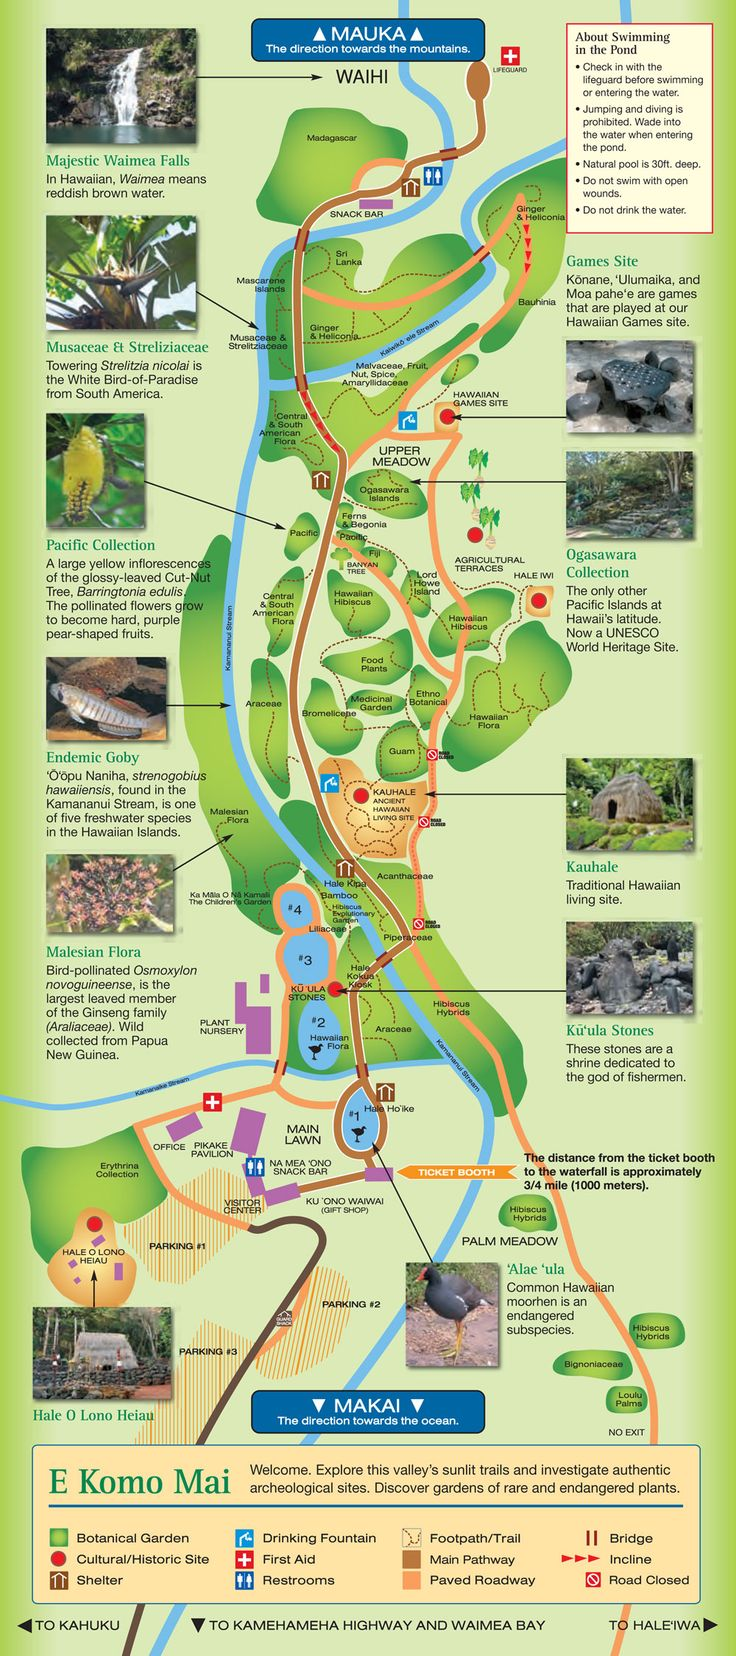 **2013WaimeaValleyMap-Go for a beautiful walk/hike up Waimea Valley up to the Waimea falls. Don't forget your camera!! It is absolutely GORGEOUS! Pay the $ and go see. Allow yourself 2 hours+ for your visit.It is a 3/4 mile walk on a paved trail to the falls, and if you are impaired at all you can pay $6.00 for a round trip shuttle to the falls. Once at the falls you can go for a swim if you want